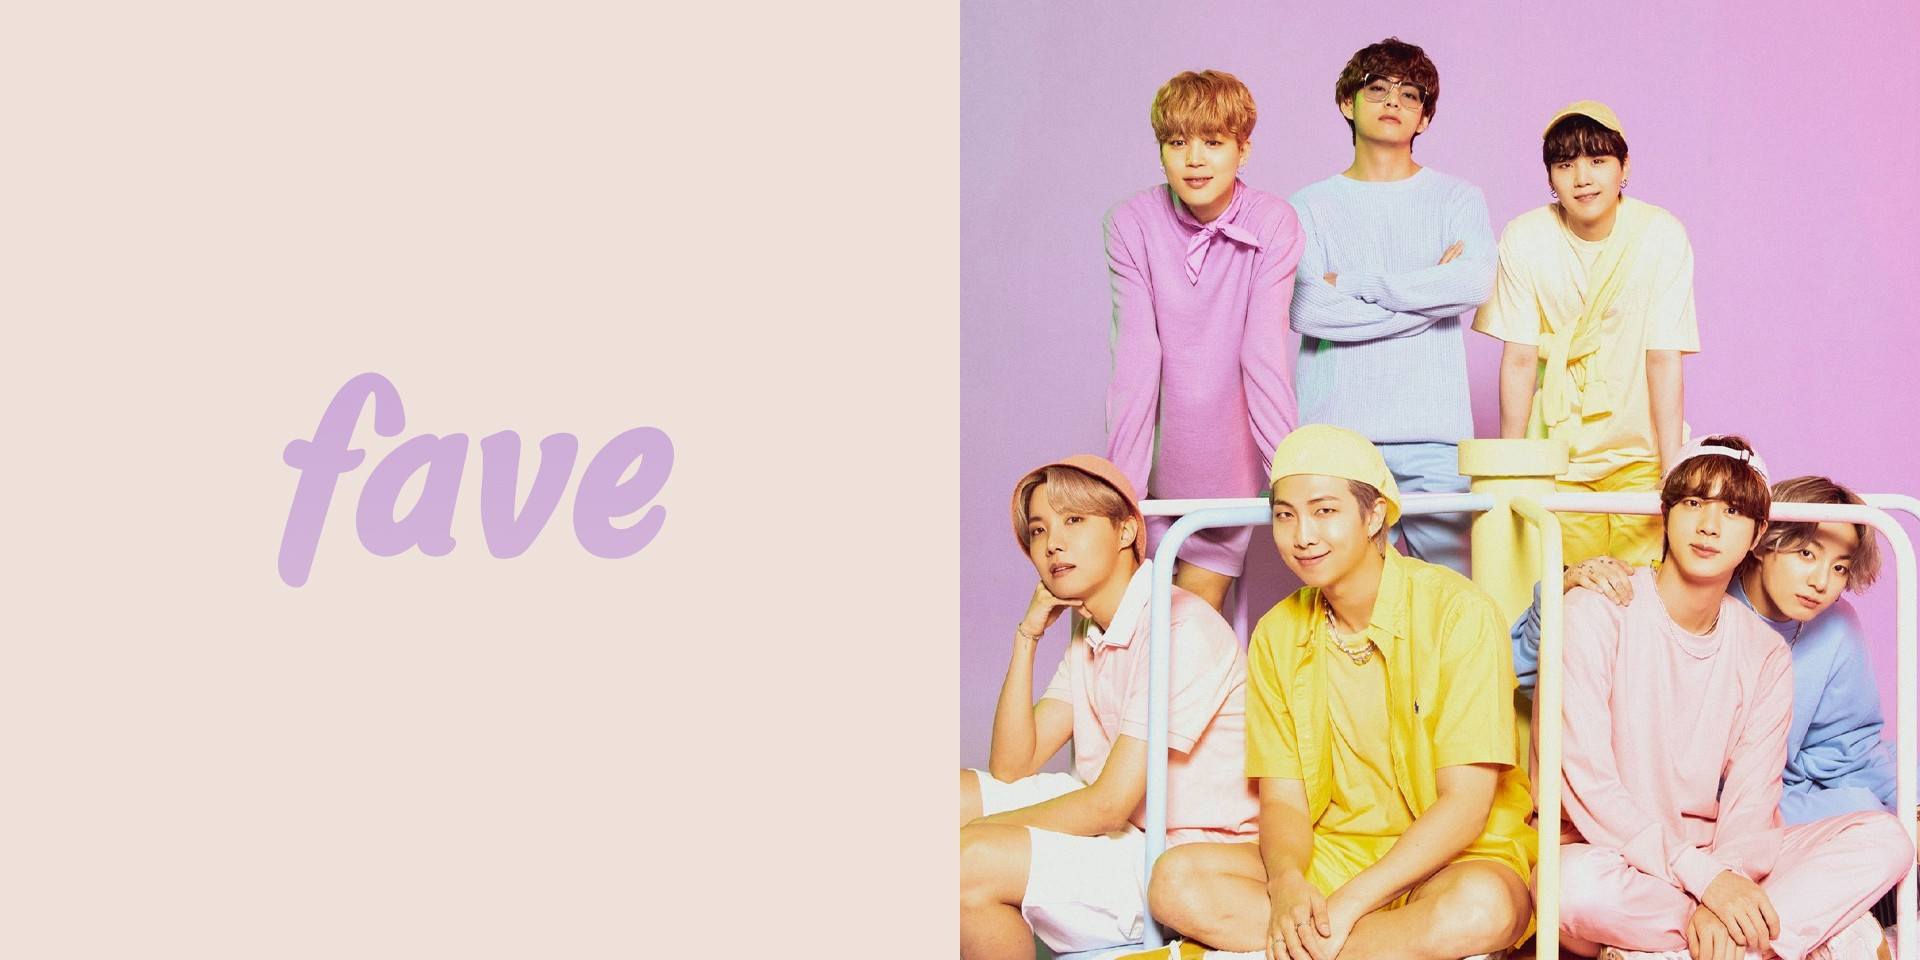 FAVE launches BTS ARMY Log and online community to create and connect